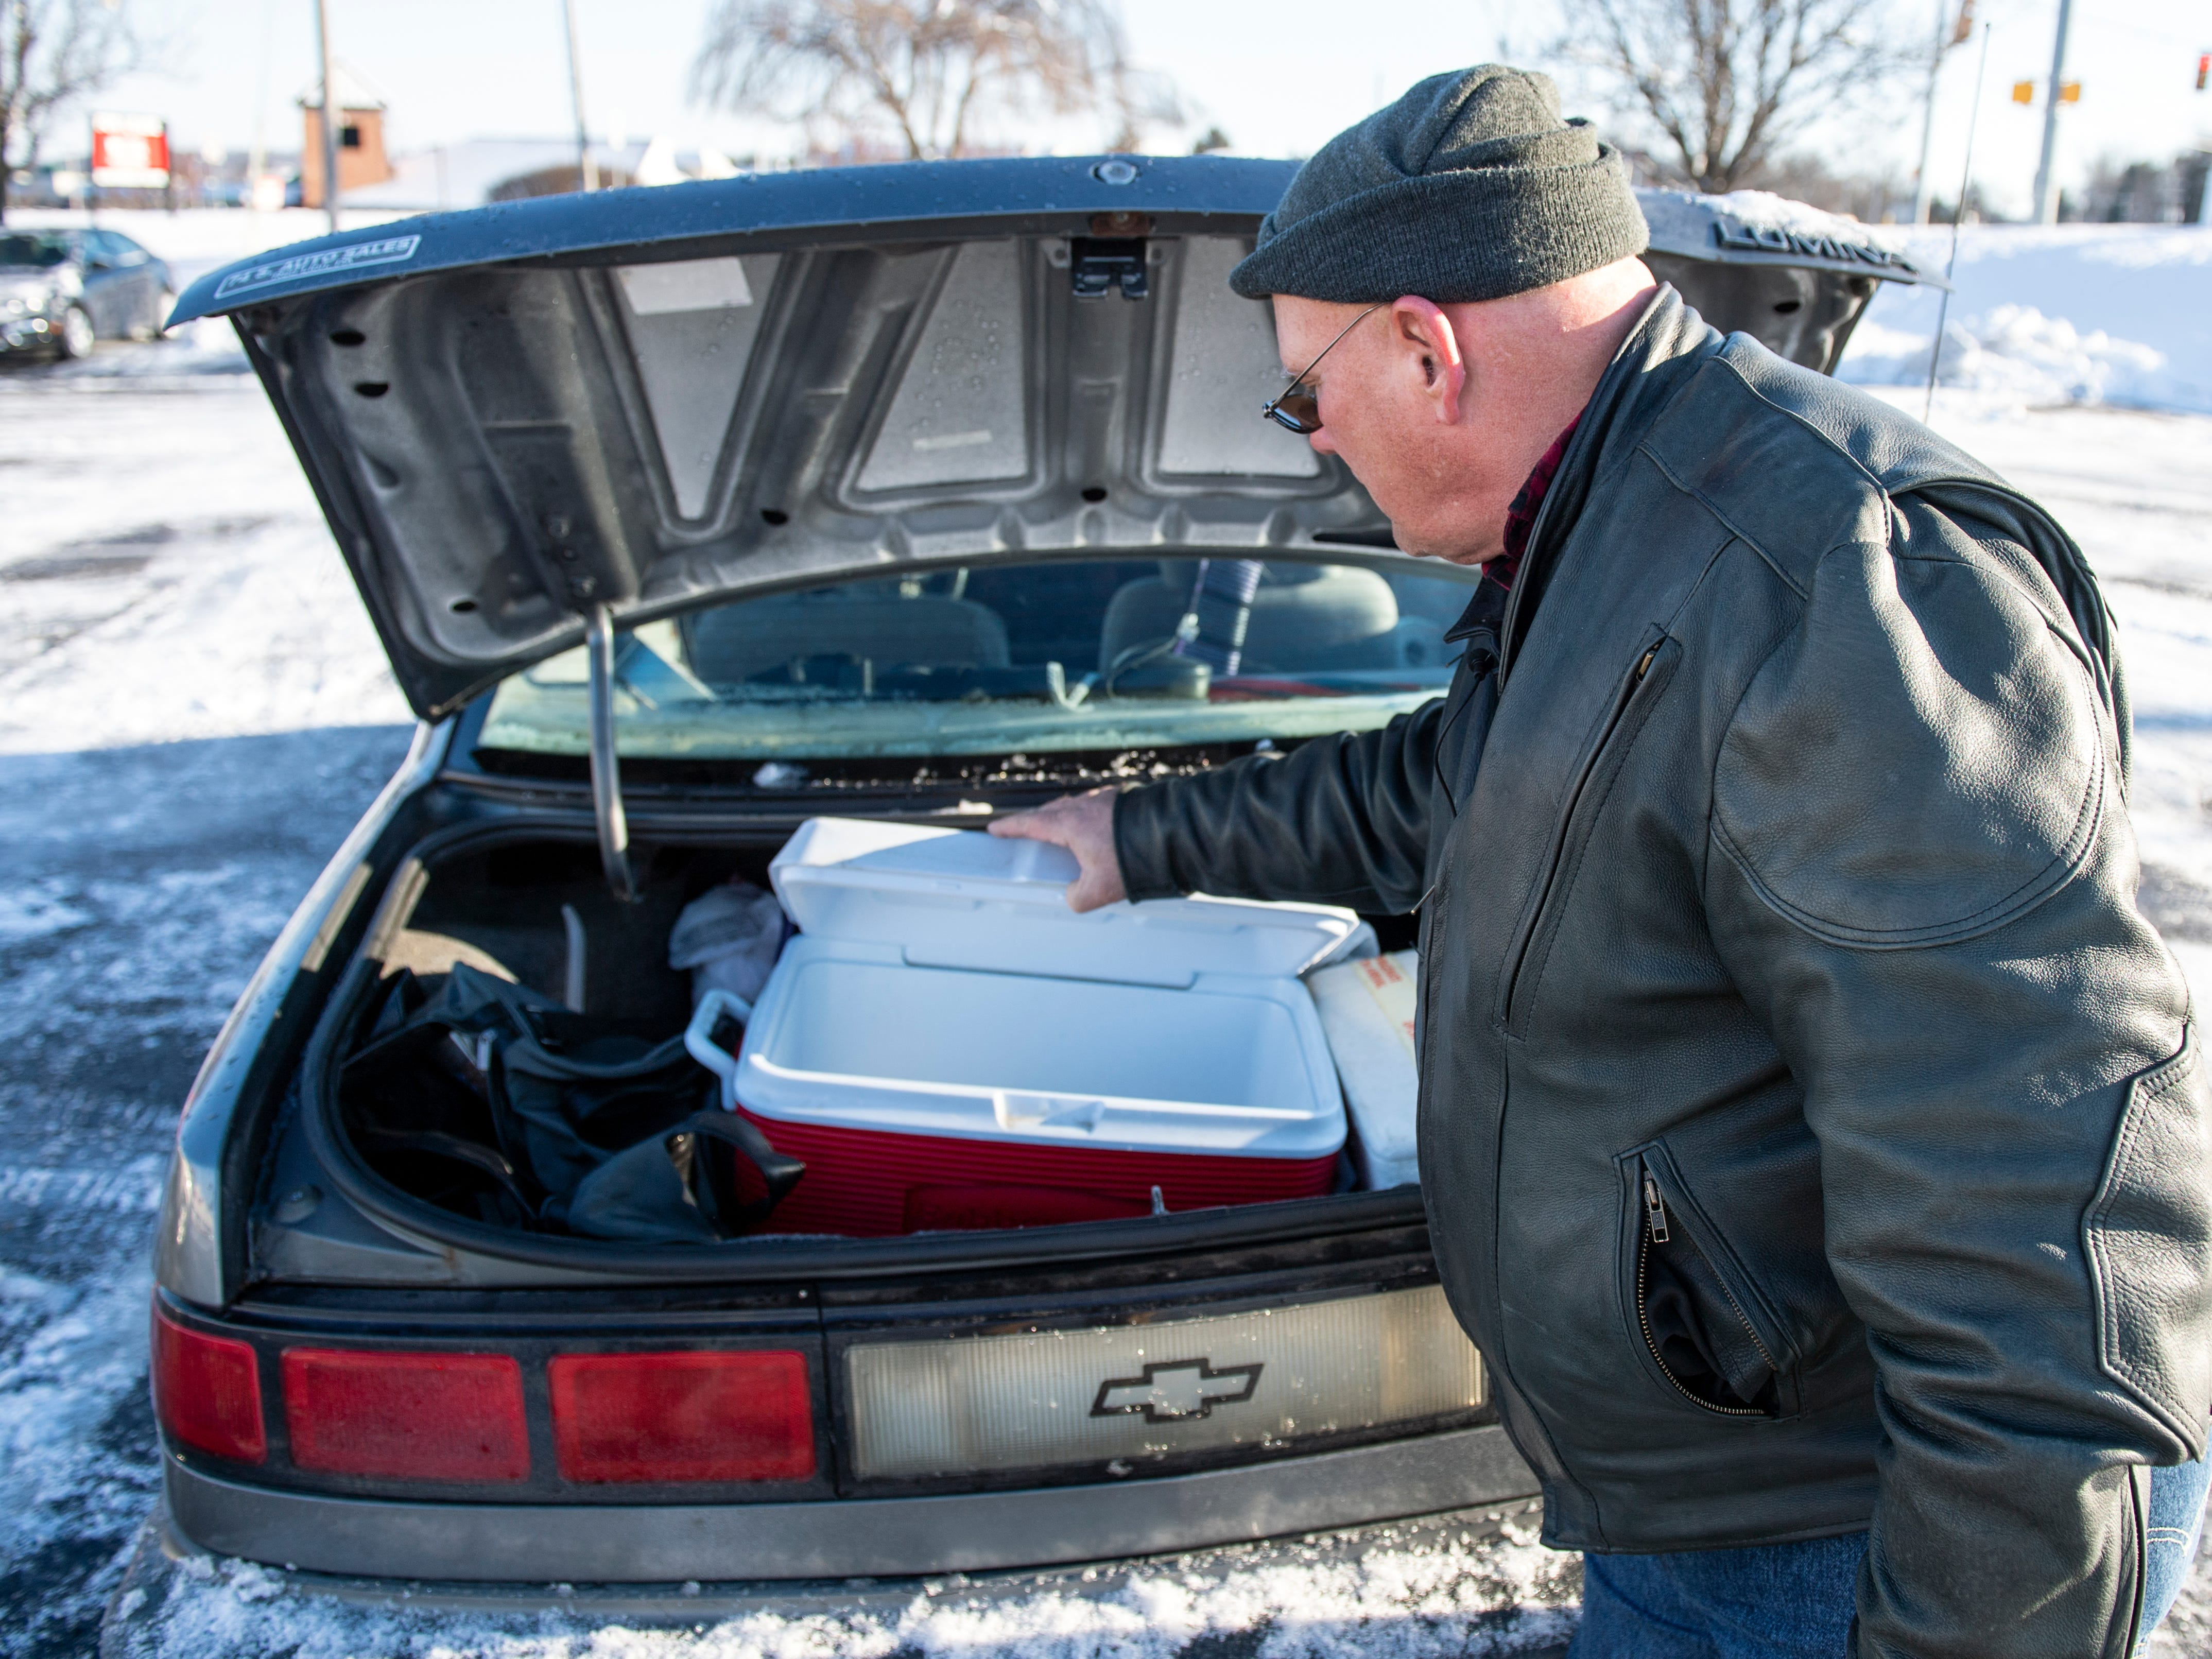 Glenn Hamberger, 66, looks through the cooler in the back of his 1994 Chevy Lumina, parked along Cape Horn Rd., Wednesday, Jan. 30, 2019. Hamberger has been living in car on-and-off since Nov.